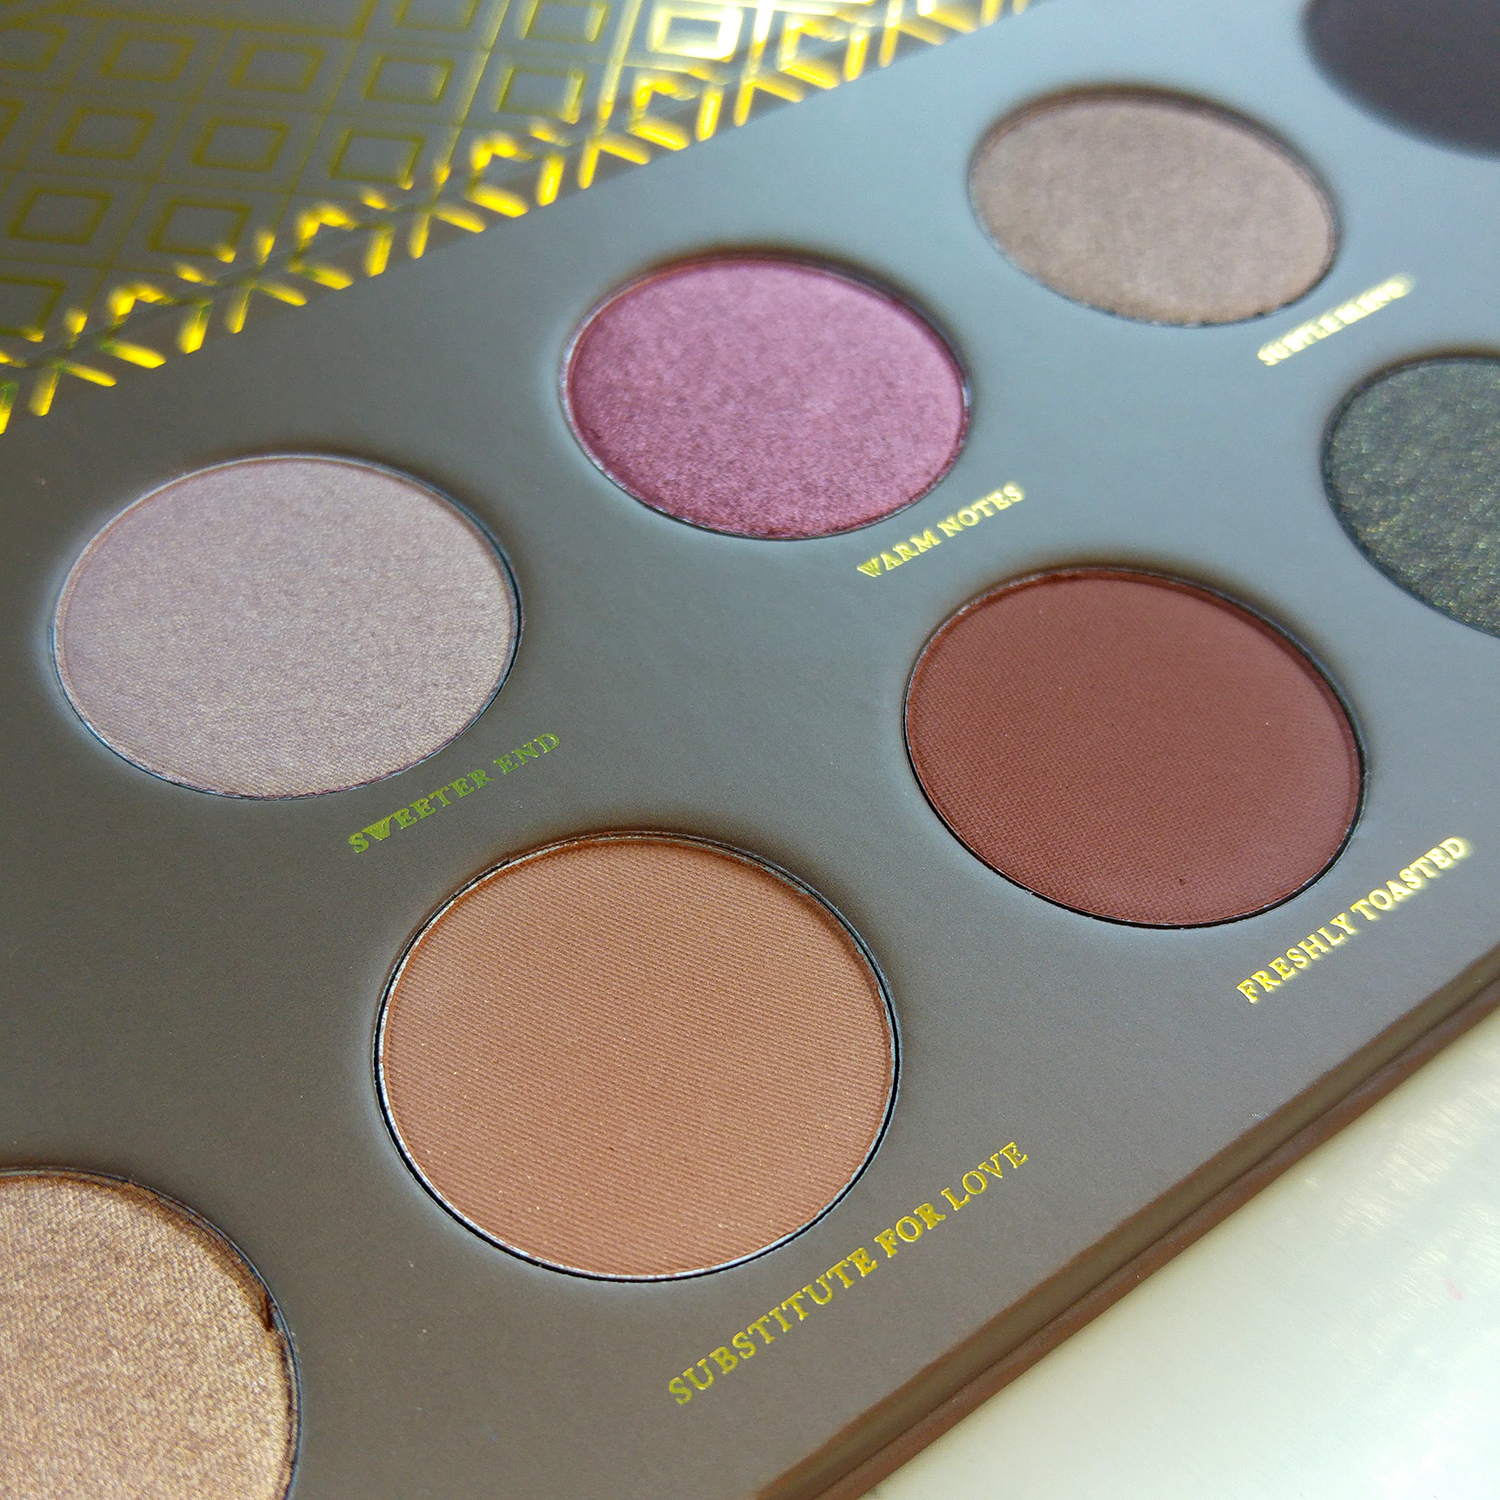 Cocoa Blend by Zoeva - review and swatches